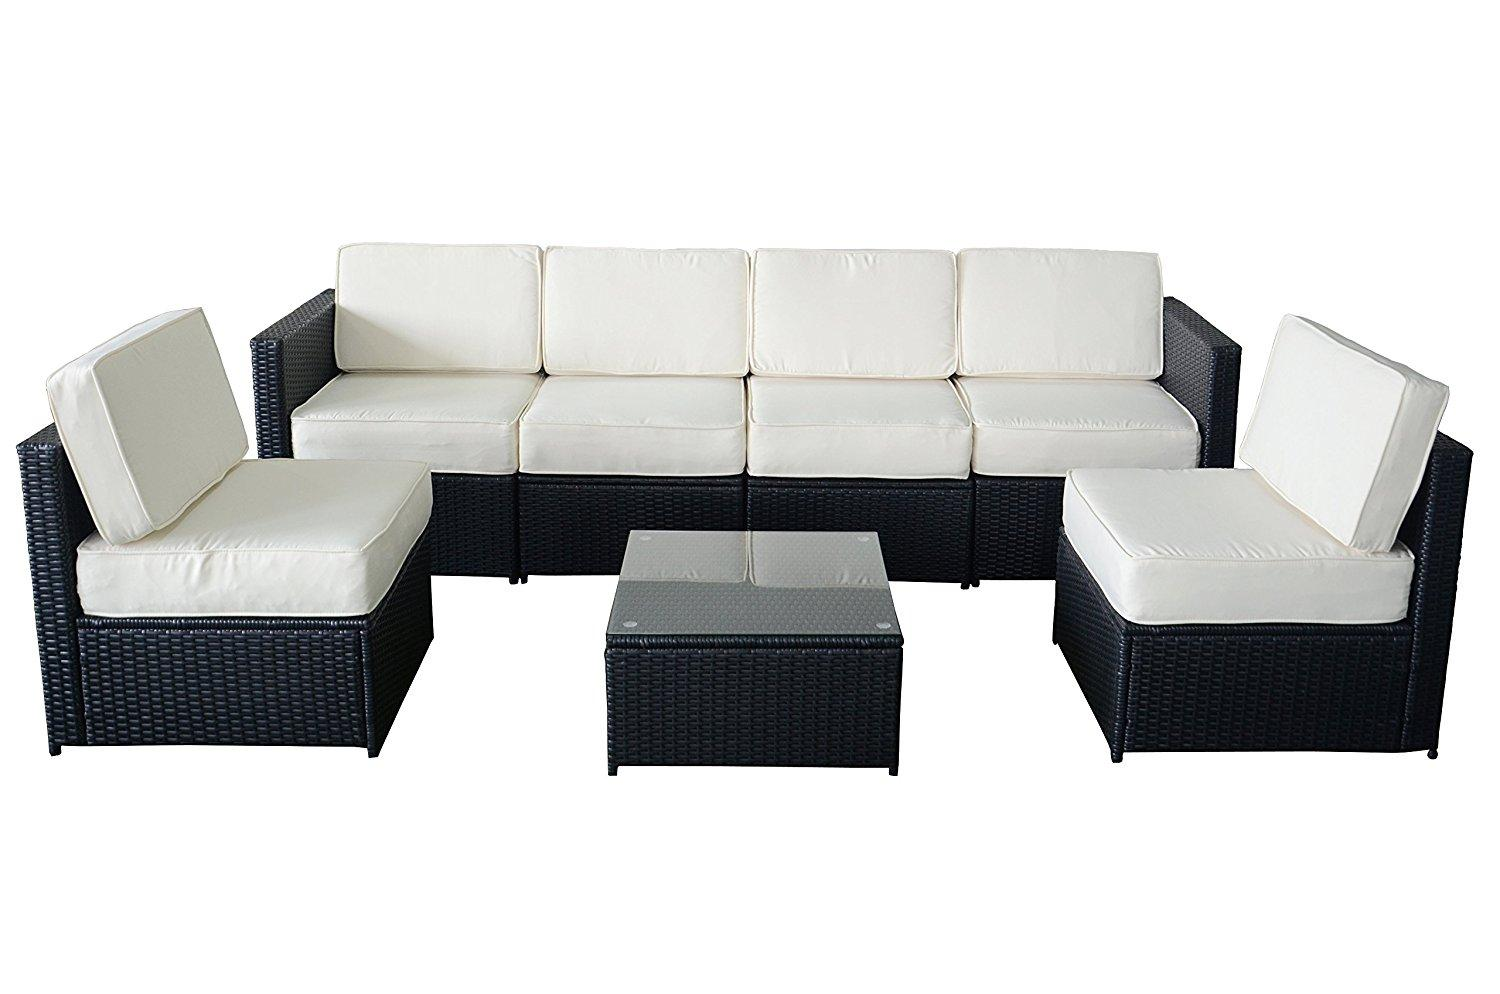 Amazon.com : MCombo 6085-S1007 7 Piece Wicker Patio Sectional ...